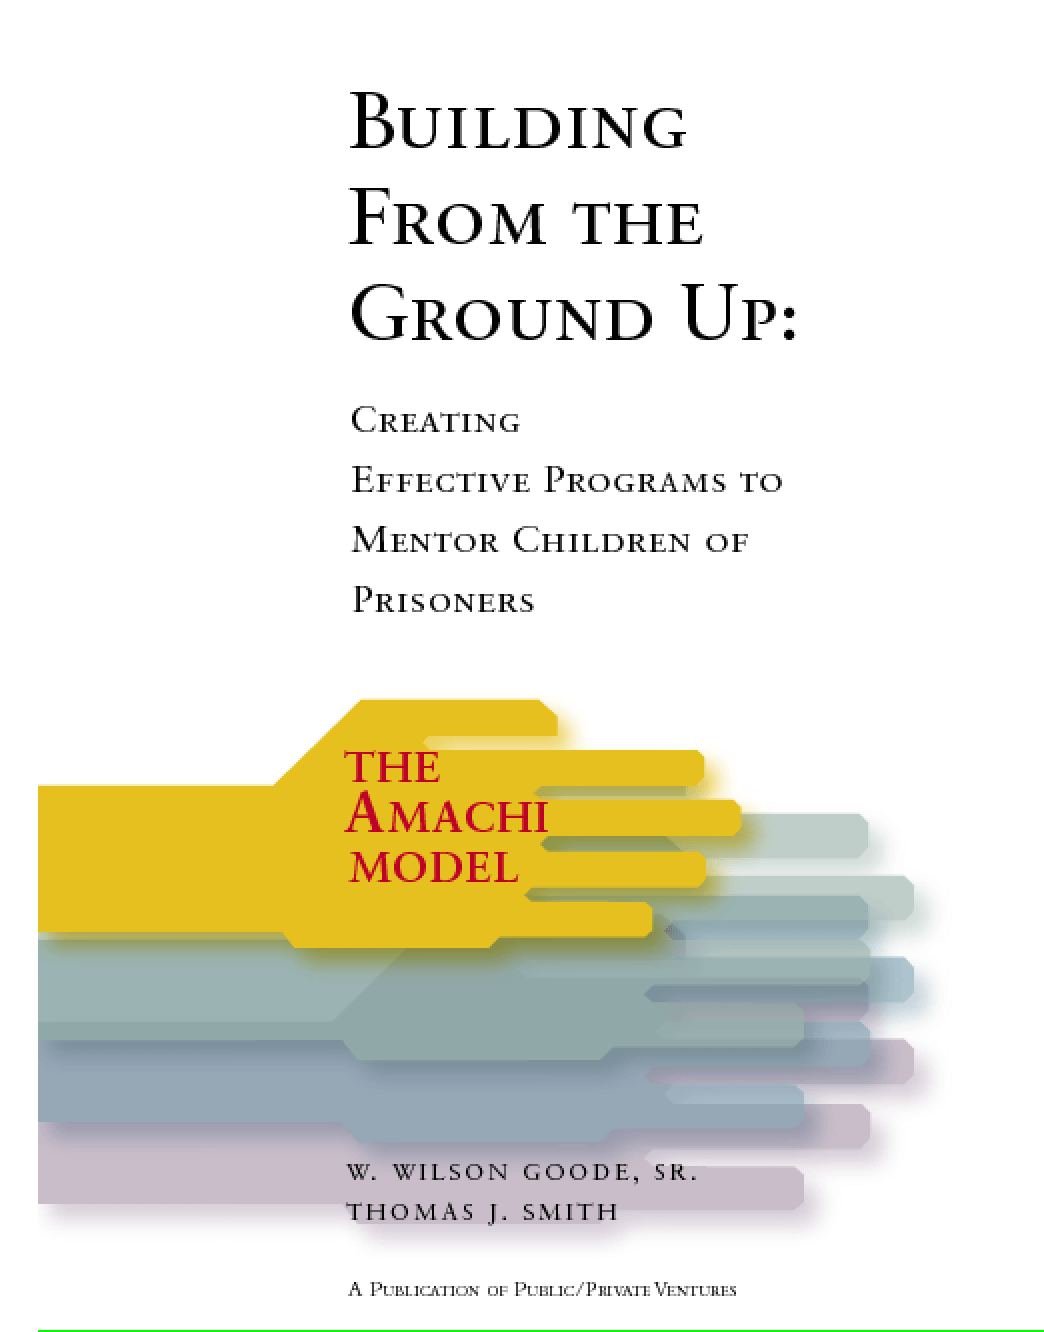 Building from the Ground Up: Creating Effective Programs to Mentor Children of Prisoners (The Amachi Model)